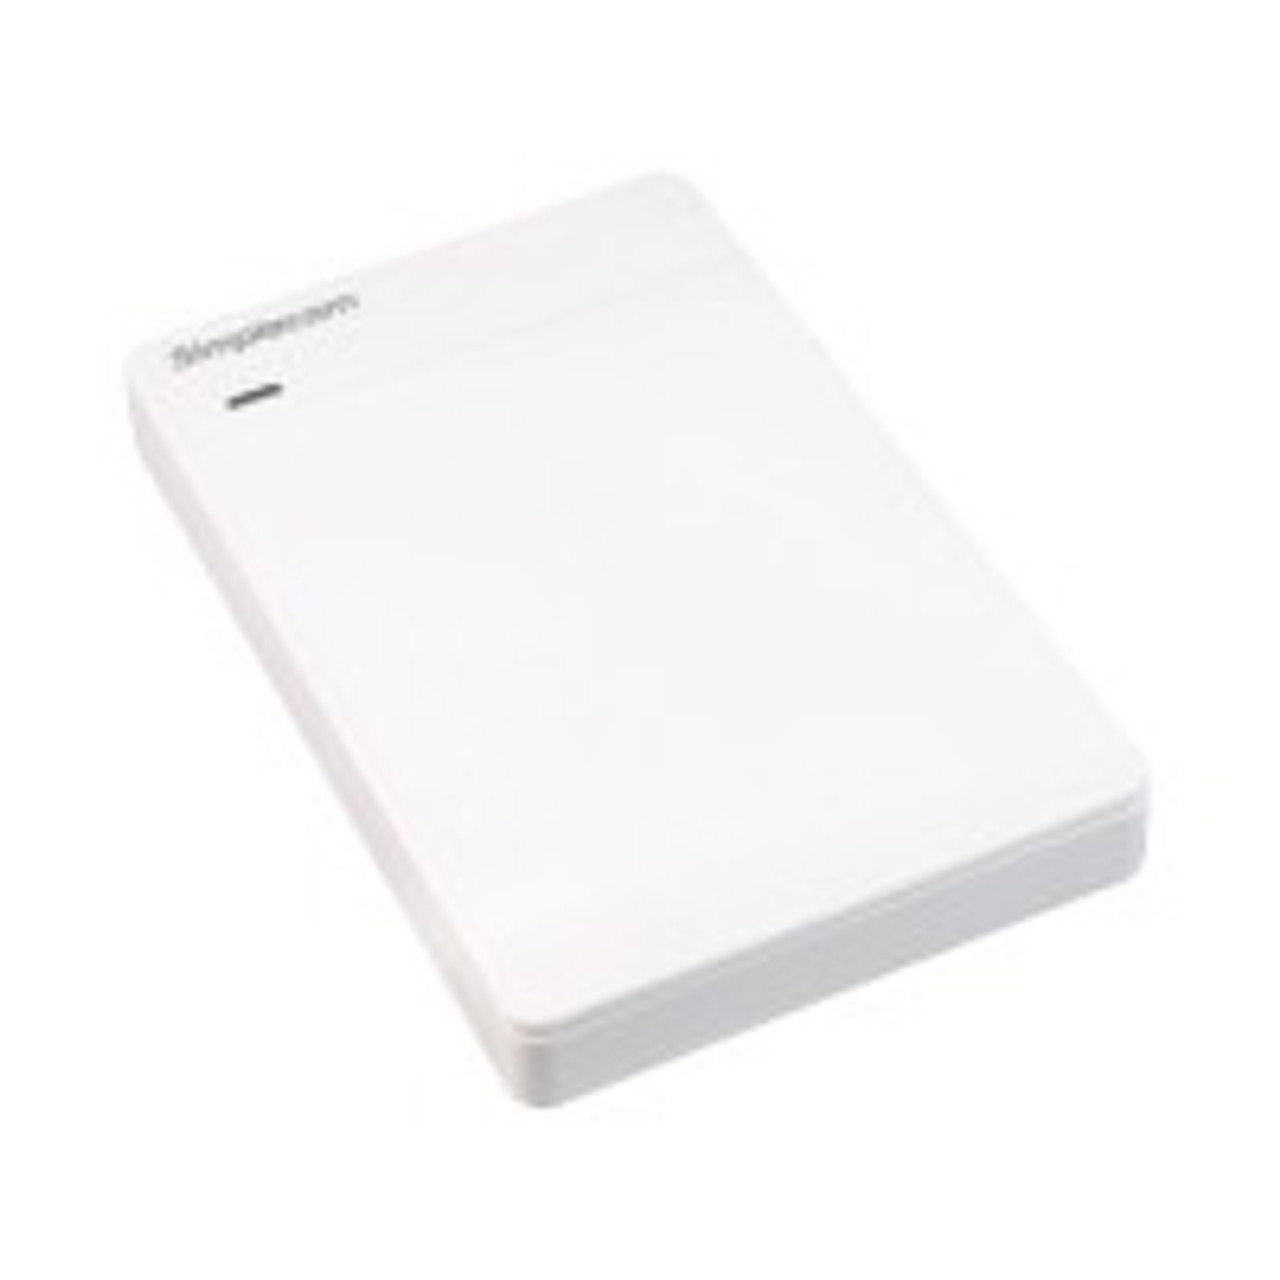 Product image for Simplecom SE203 Tool Free 2.5in SATA drive to USB3 Drive Box White   CX Computer Superstore